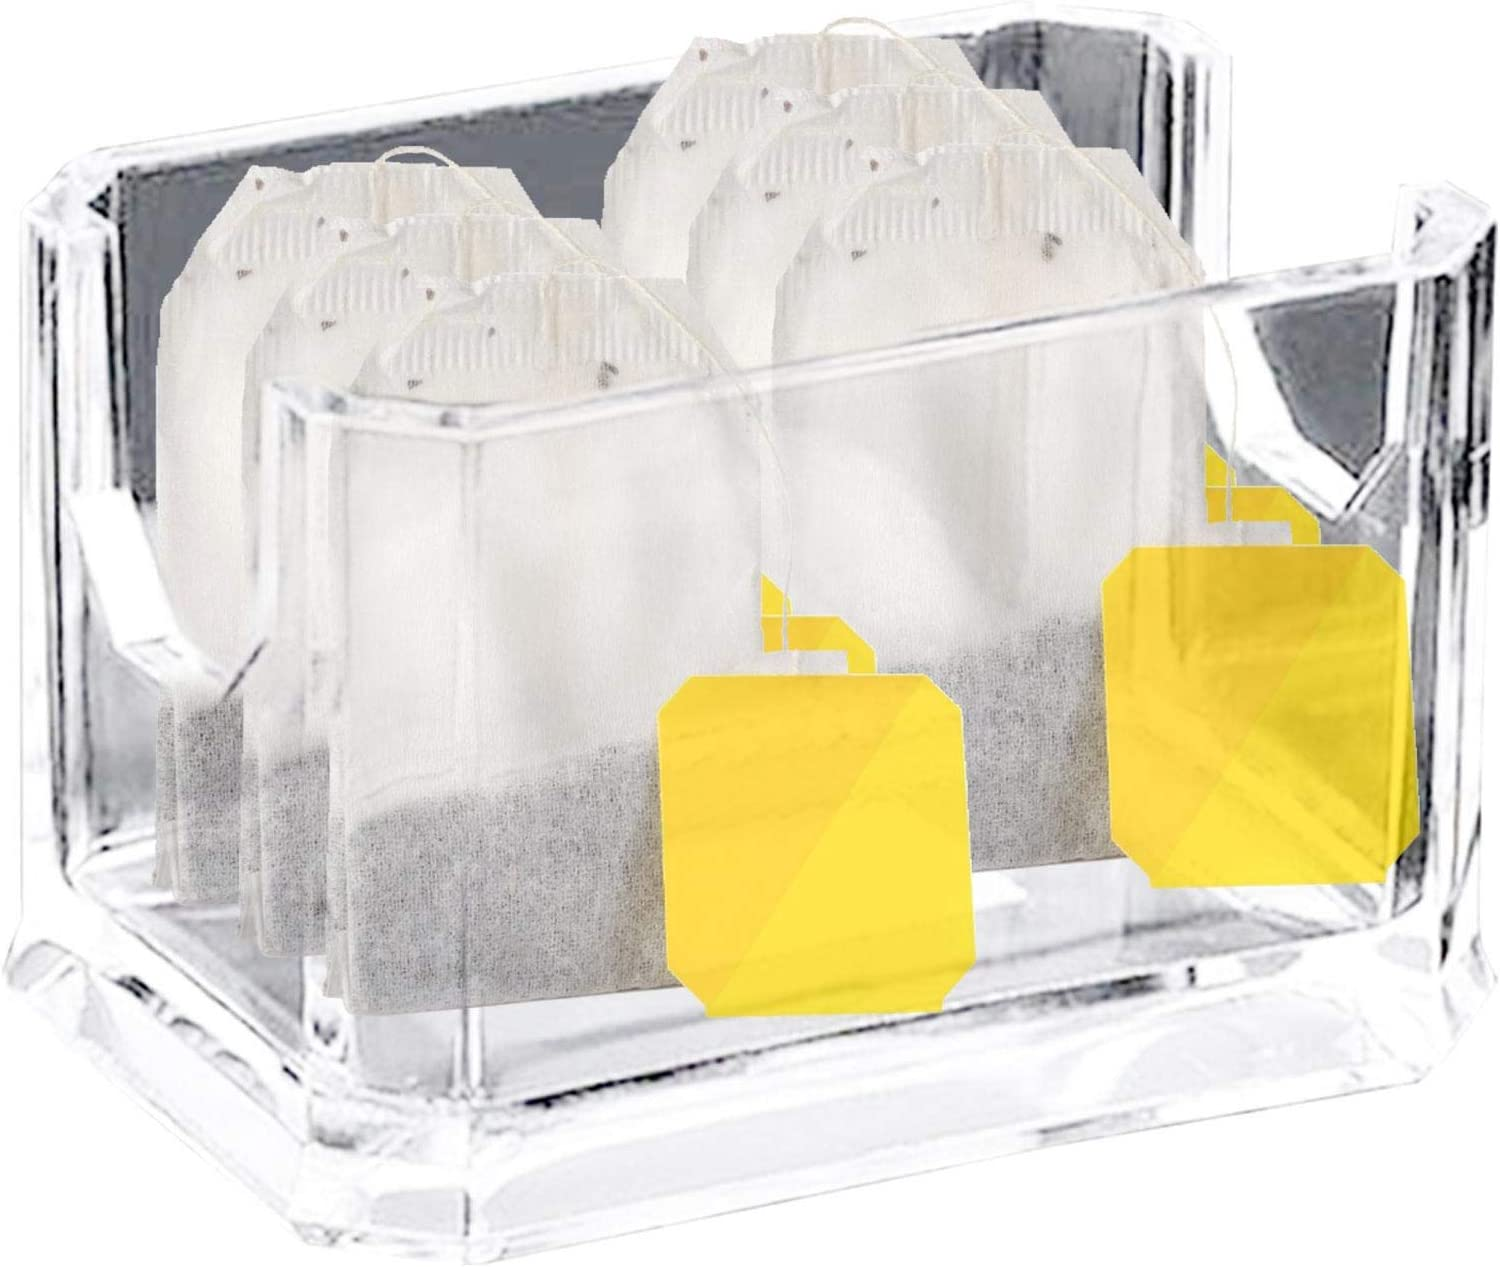 Coffee Sugar Bag Case Guest Room Storage Boxes.Pantry Organizer For Kitchen Acrylic Tea Bag Clear Boxes For Kitchen Holds Beverage Bags Clear Rectangle